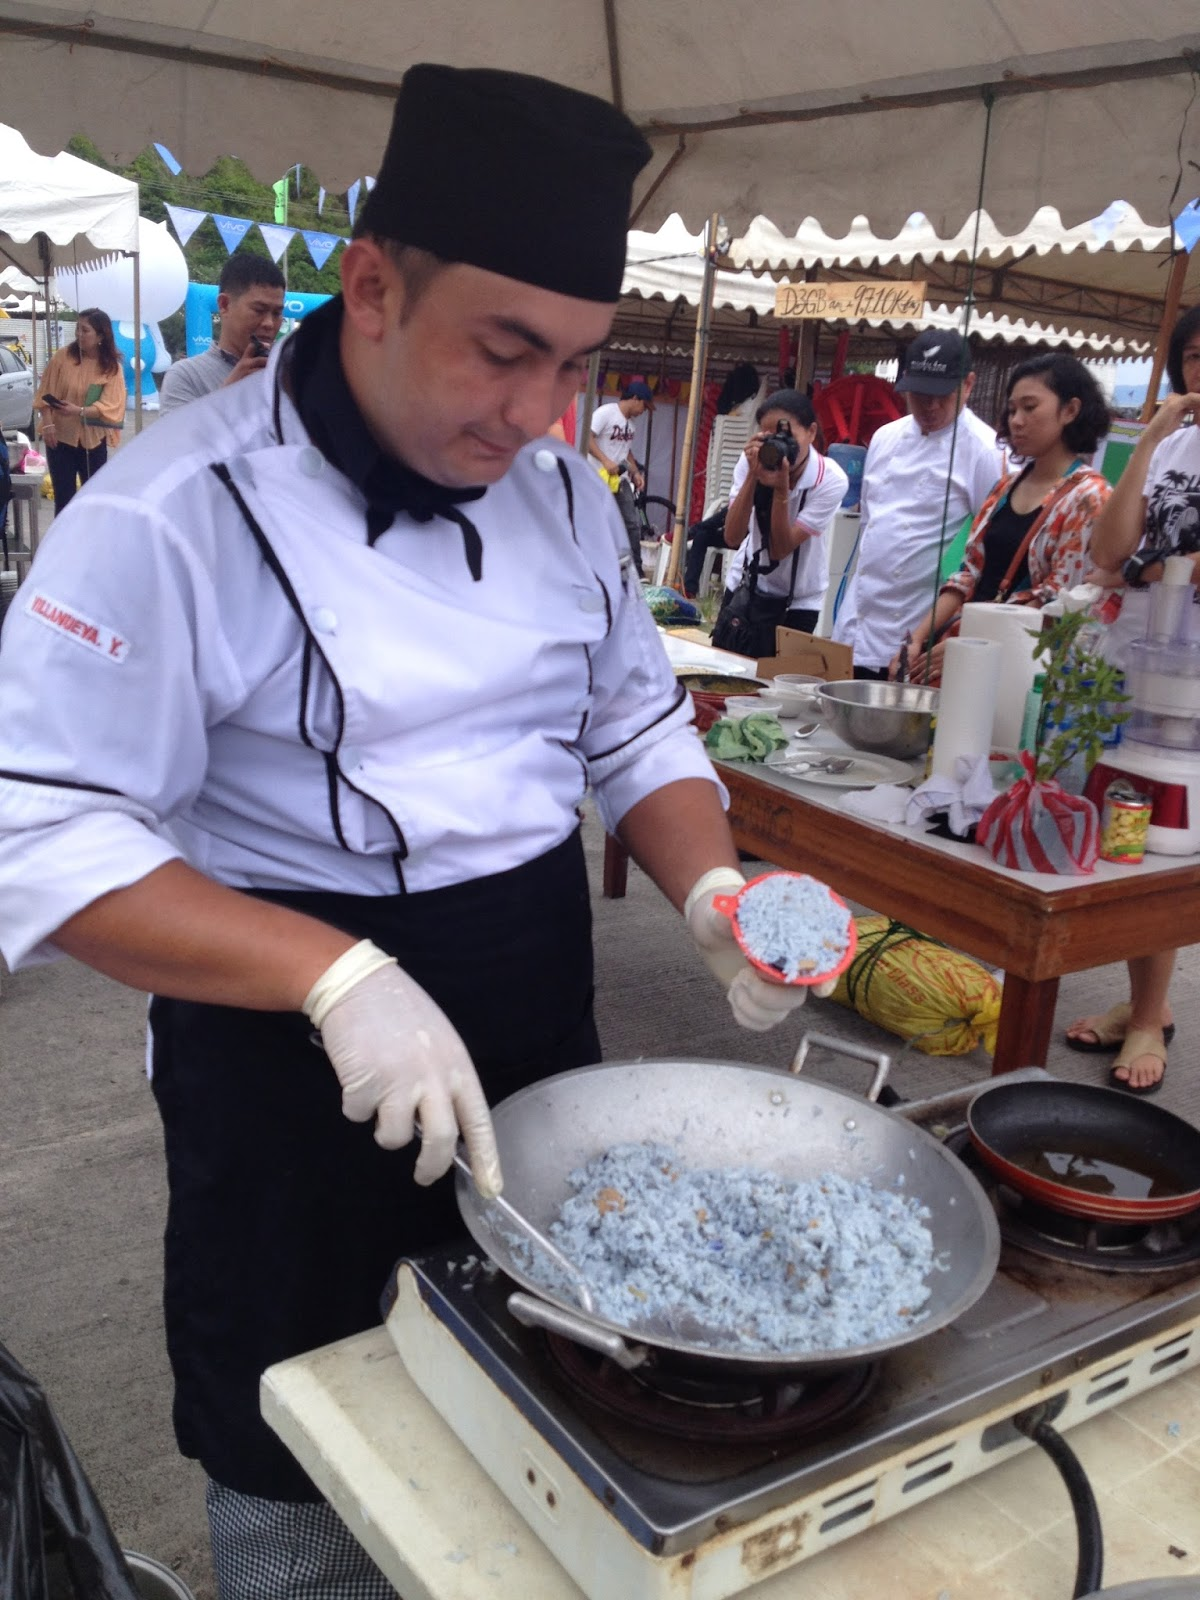 8 bicols culinary school to show off their cooking skills in the 11 students and aspiring chefs abound will bring the heat in cooking contests that spotlights local flavors and culinary talents through enticing forumfinder Gallery